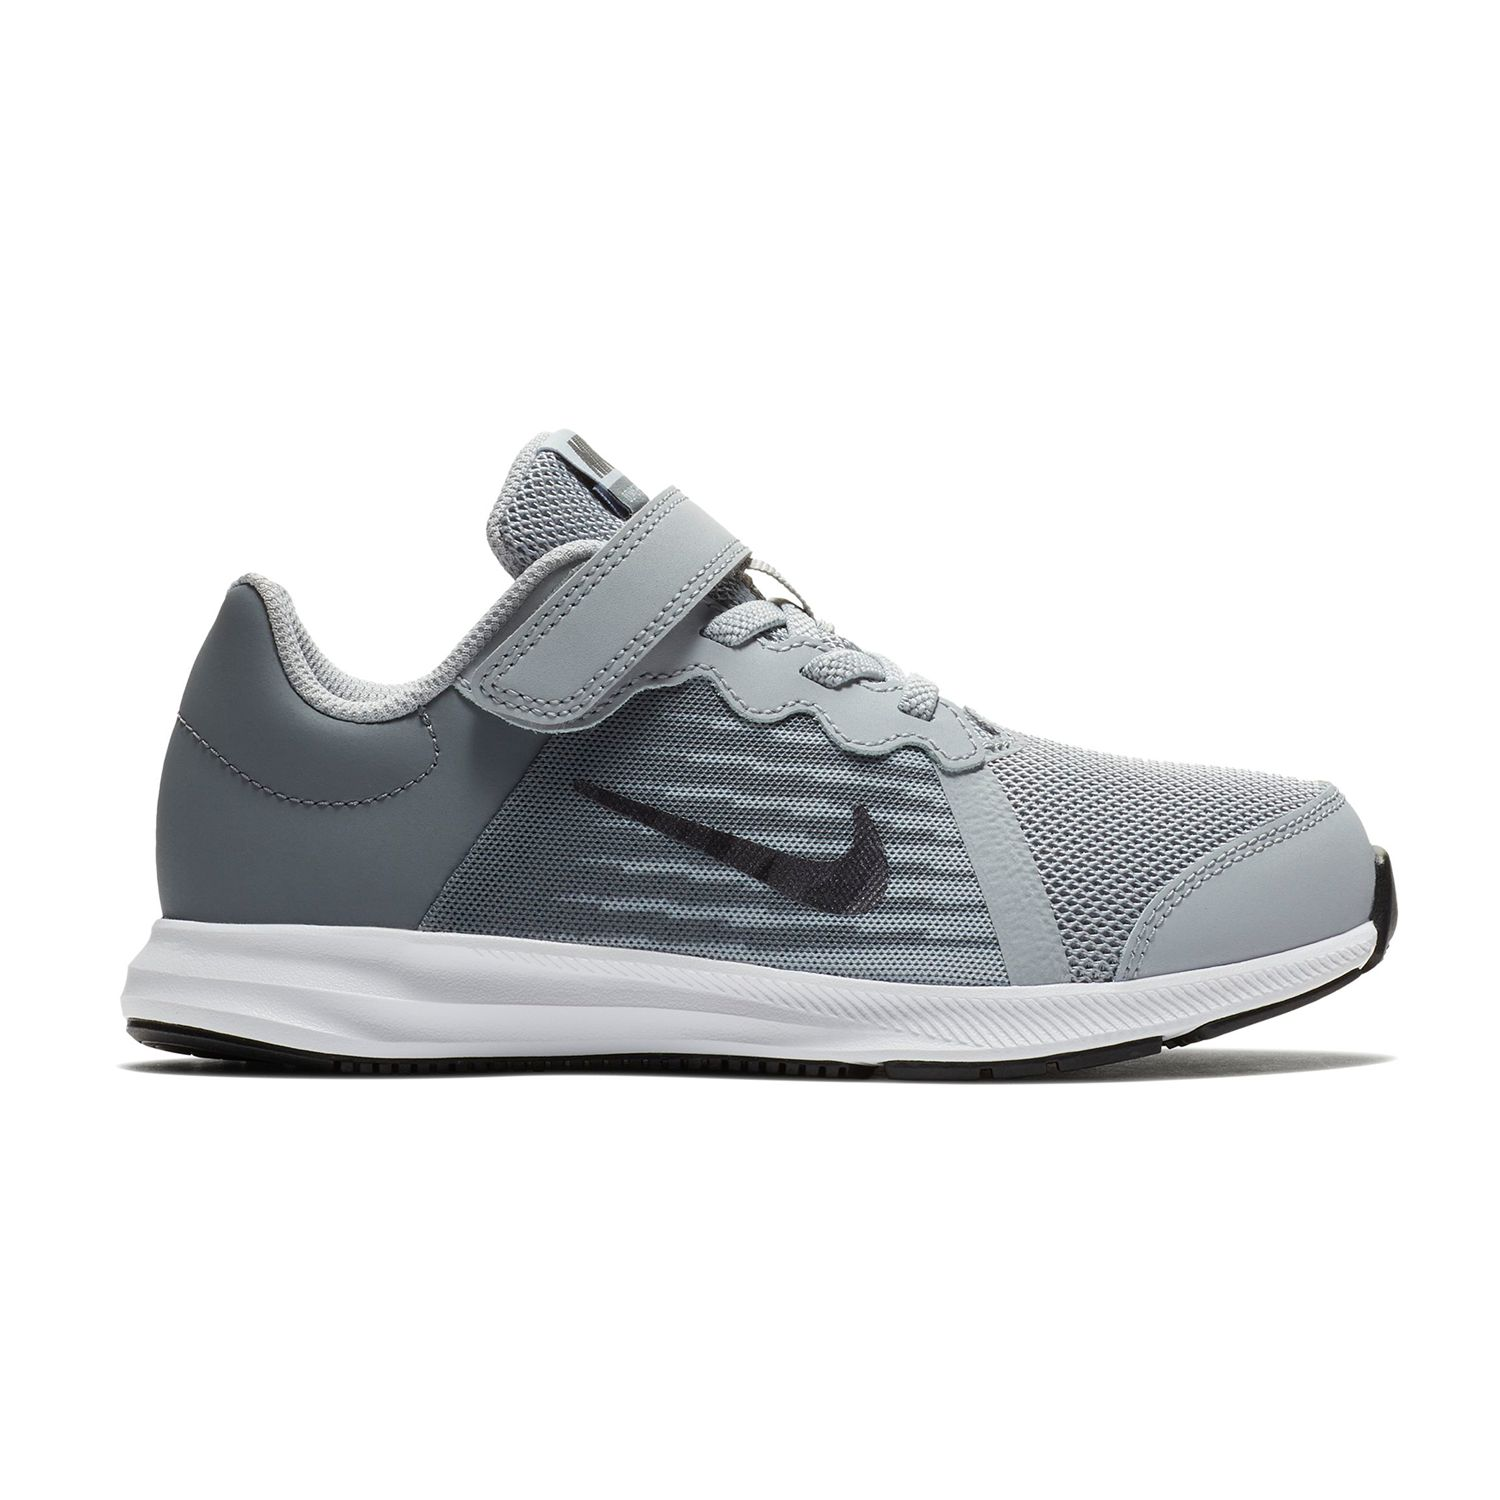 Nike Downshifter 8 Preschool Boys\u0027 Sneakers